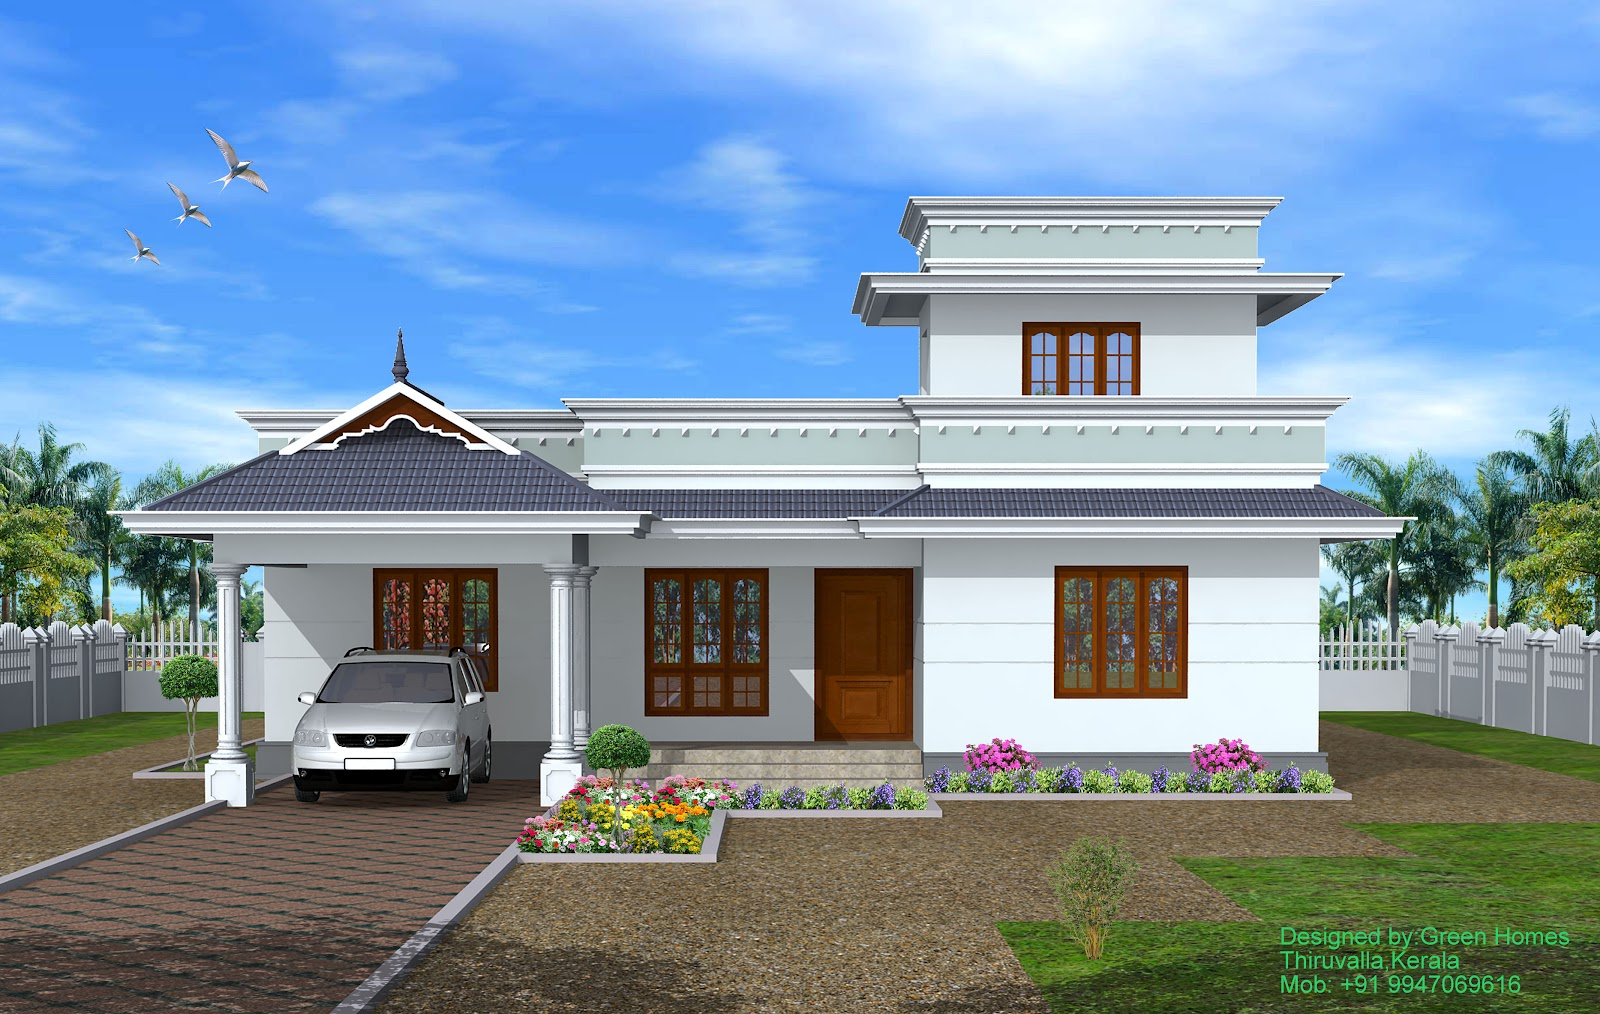 Green homes kerala 4 bhk single storey house 1950 for Single story house design